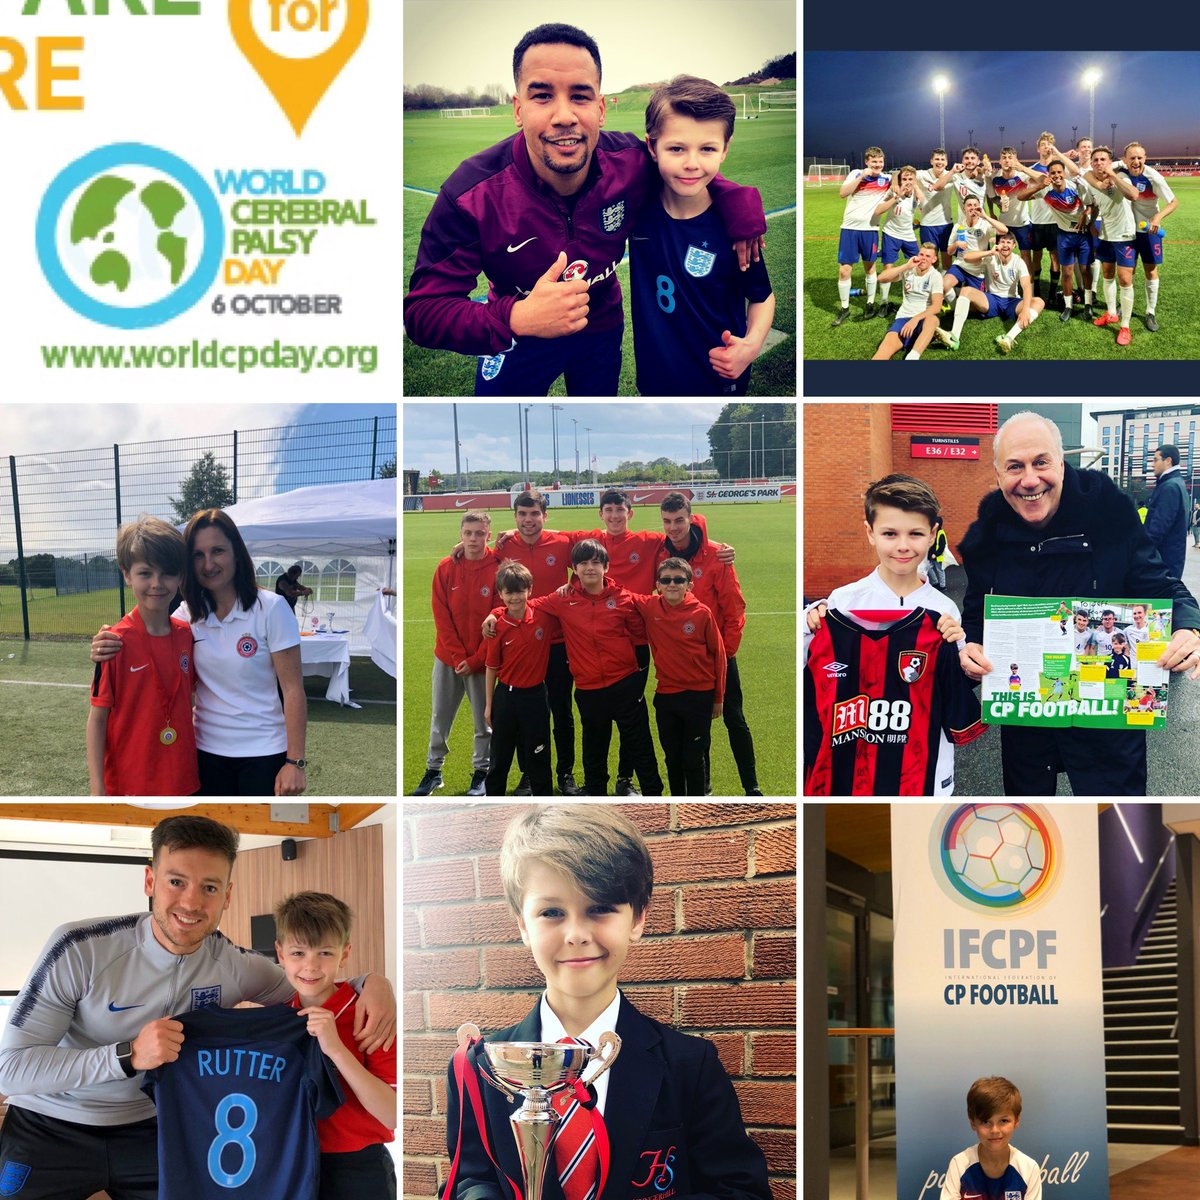 Today is @WorldCPDay #worldcpday so I decided to thank the people who inspired my CP Story. Who inspired your CP Story ? #mycoaches @michellewilcock #myteammates @CP_United_FC @jackrutter2 #myclassmates @MartinSinclair1 @England CP @jeffmostyn @ifcpf #bethebestyoucanbe 👊